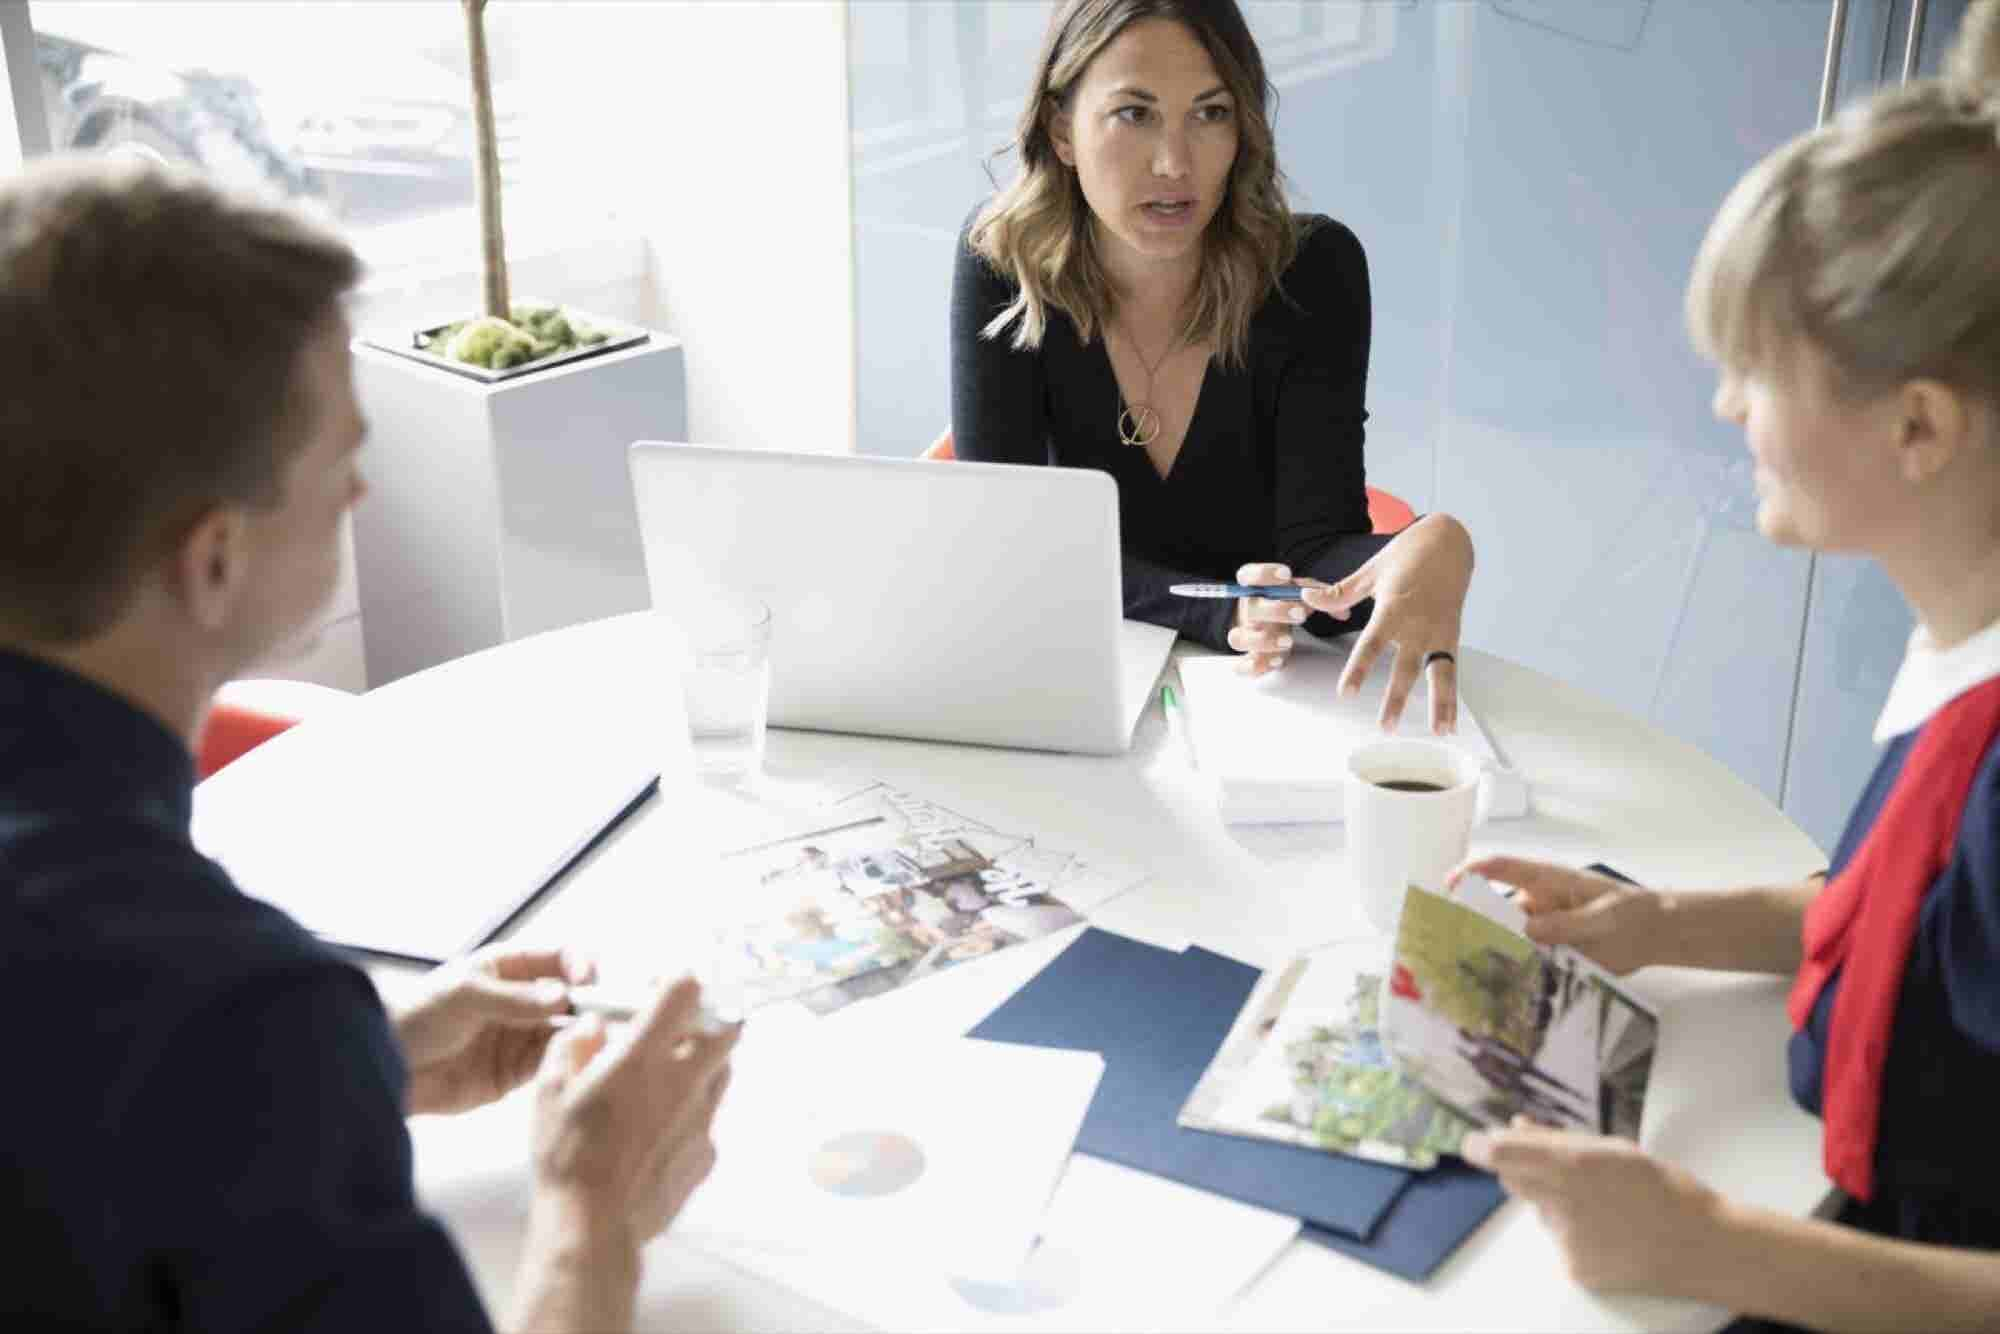 10 Simple Ways to Build a Collaborative, Successful Work Environment